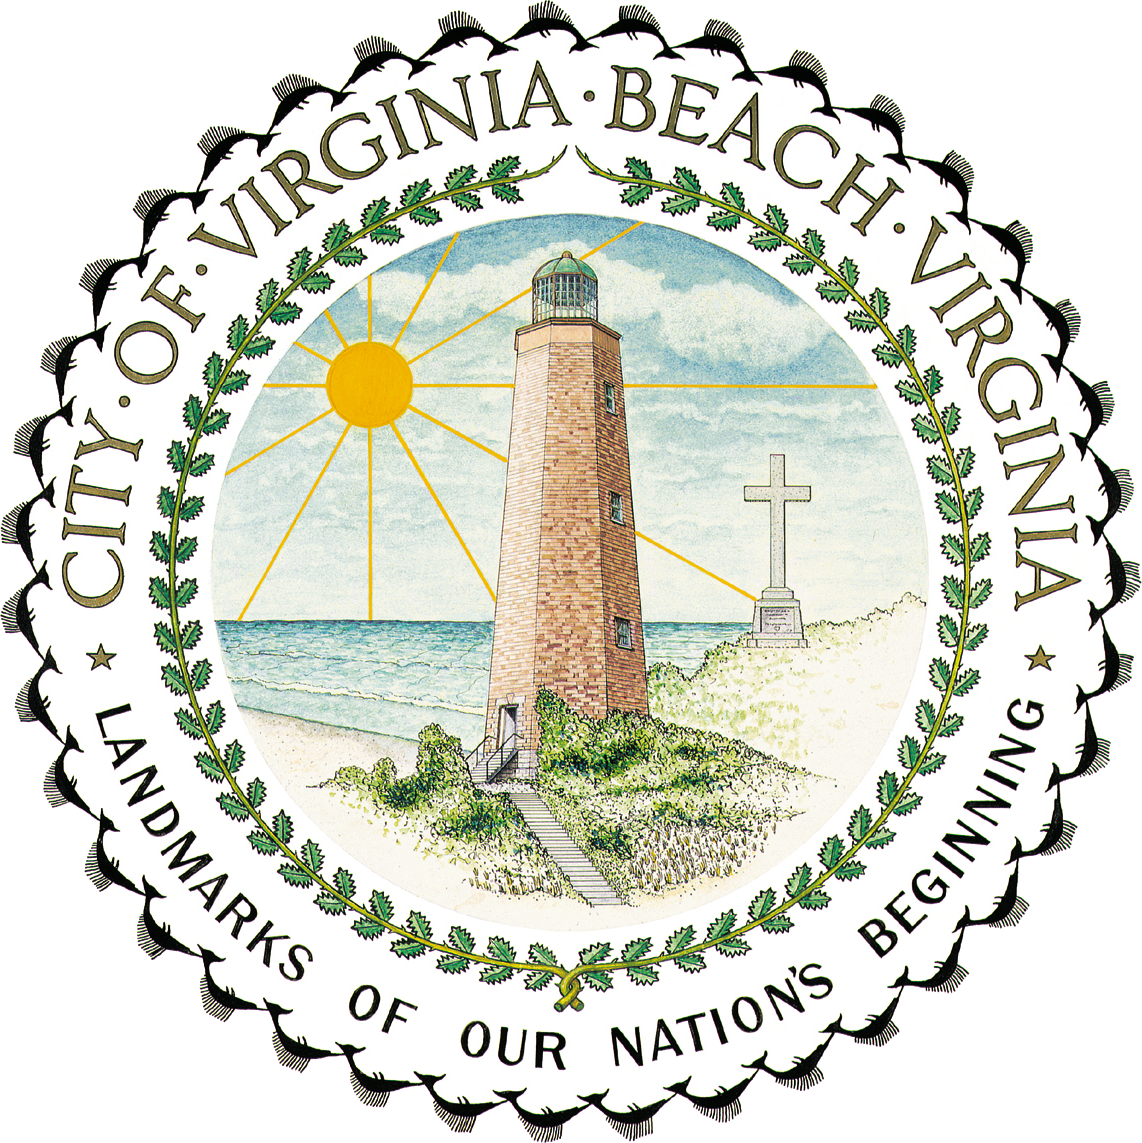 Virginia Beach, Virginia Mailing Lists